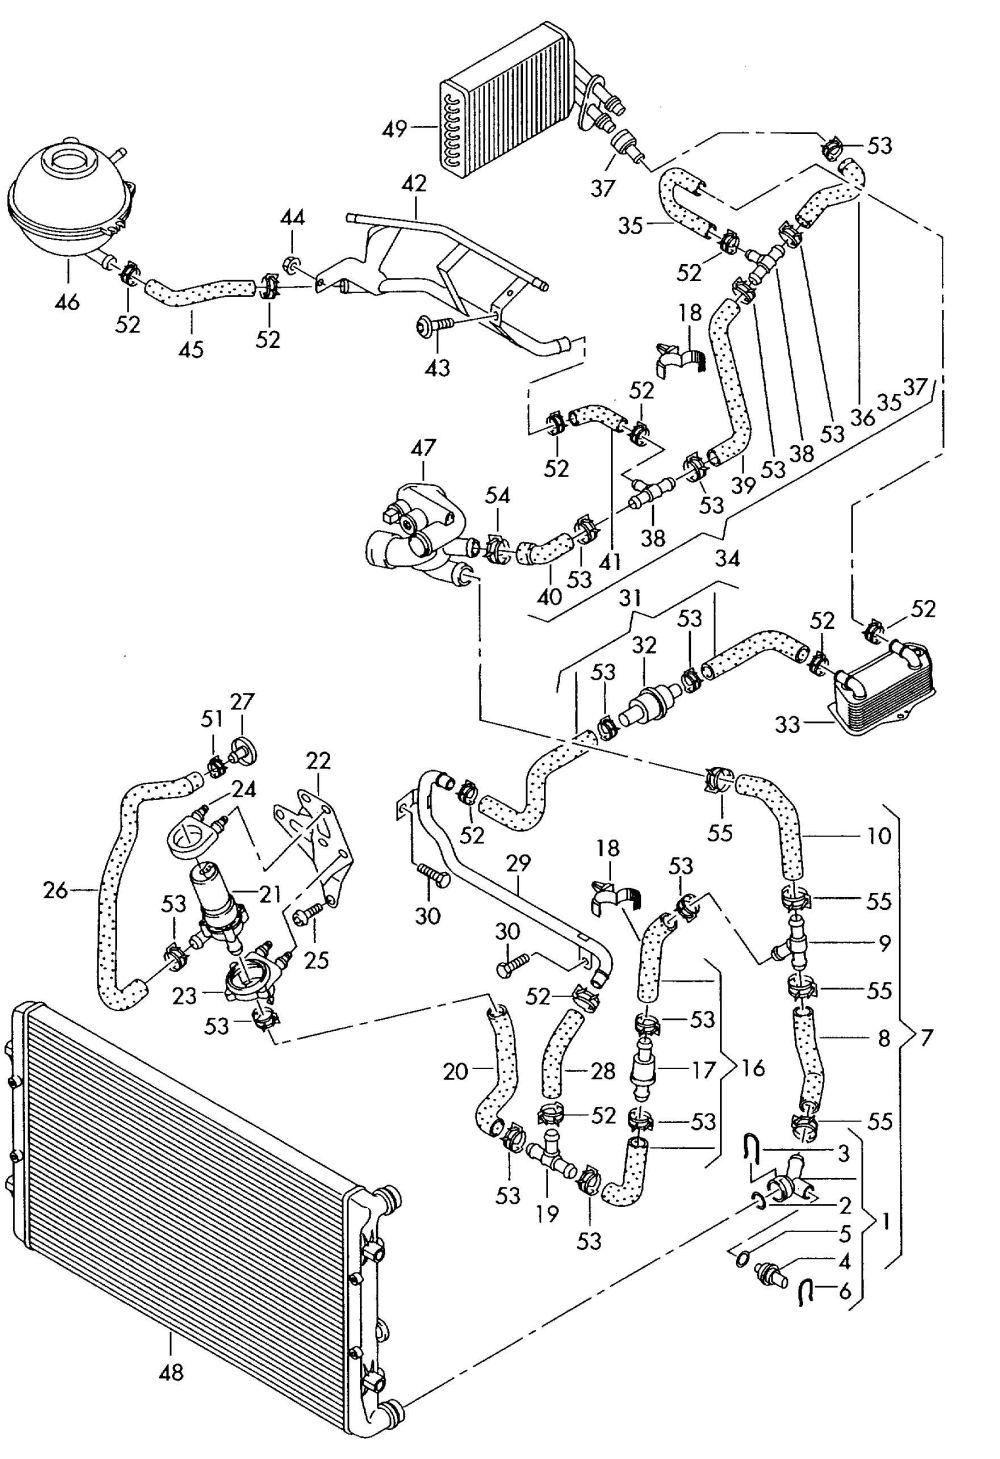 medium resolution of 2001 audi tt engine cooling diagram trusted wiring diagram rh 36 nl schoenheitsbrieftaube de audi tt engine bay diagram audi tt bam engine diagram